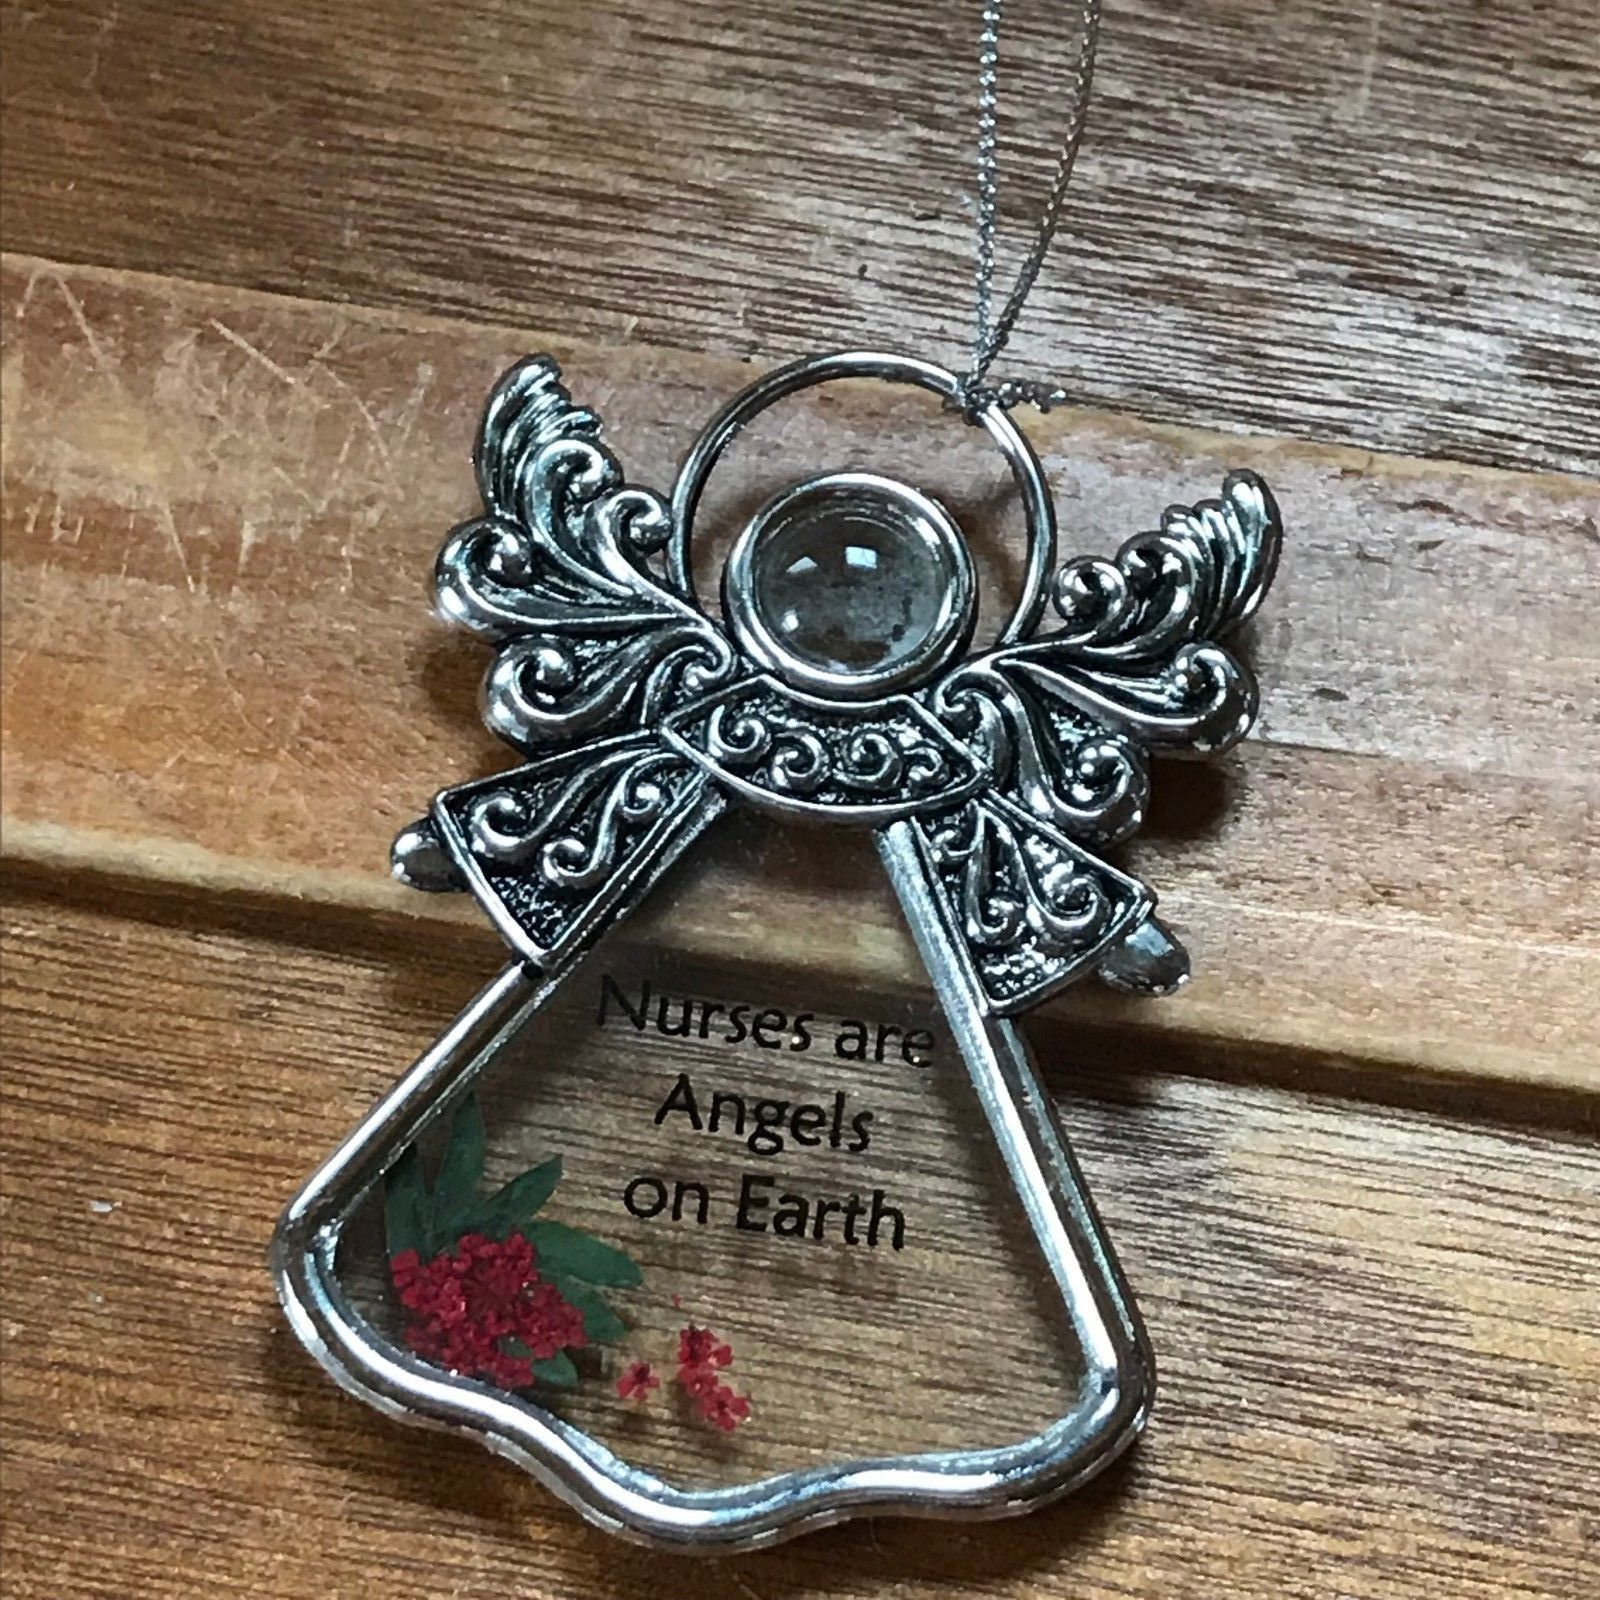 Ornate Silvertone & Glass w Small Red Flower Angel NURSES ARE ANGELS ON EARTH Ch